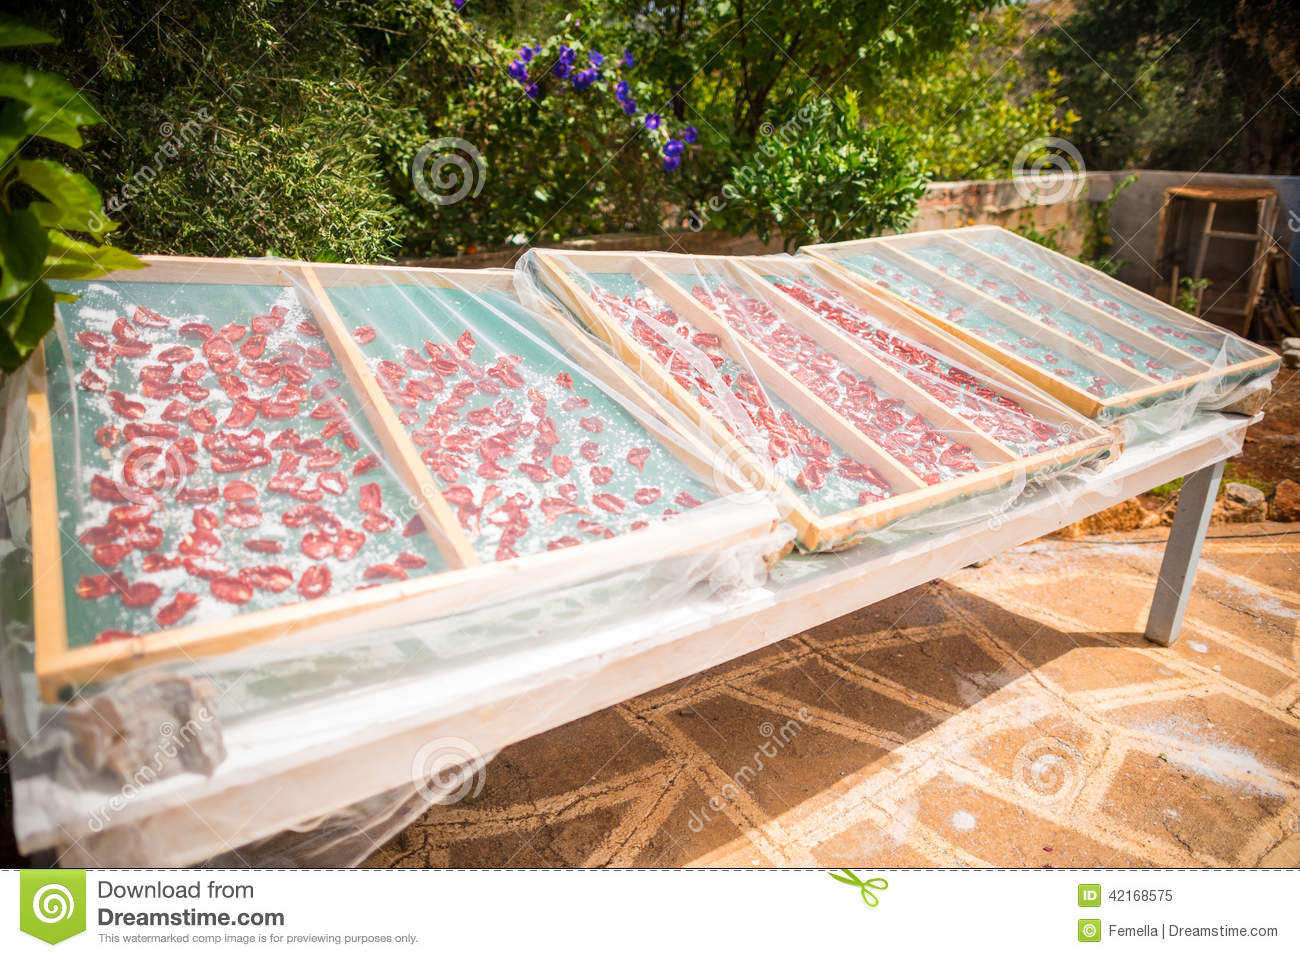 tomatoes drying under the sun stock photo image 42168575. Black Bedroom Furniture Sets. Home Design Ideas